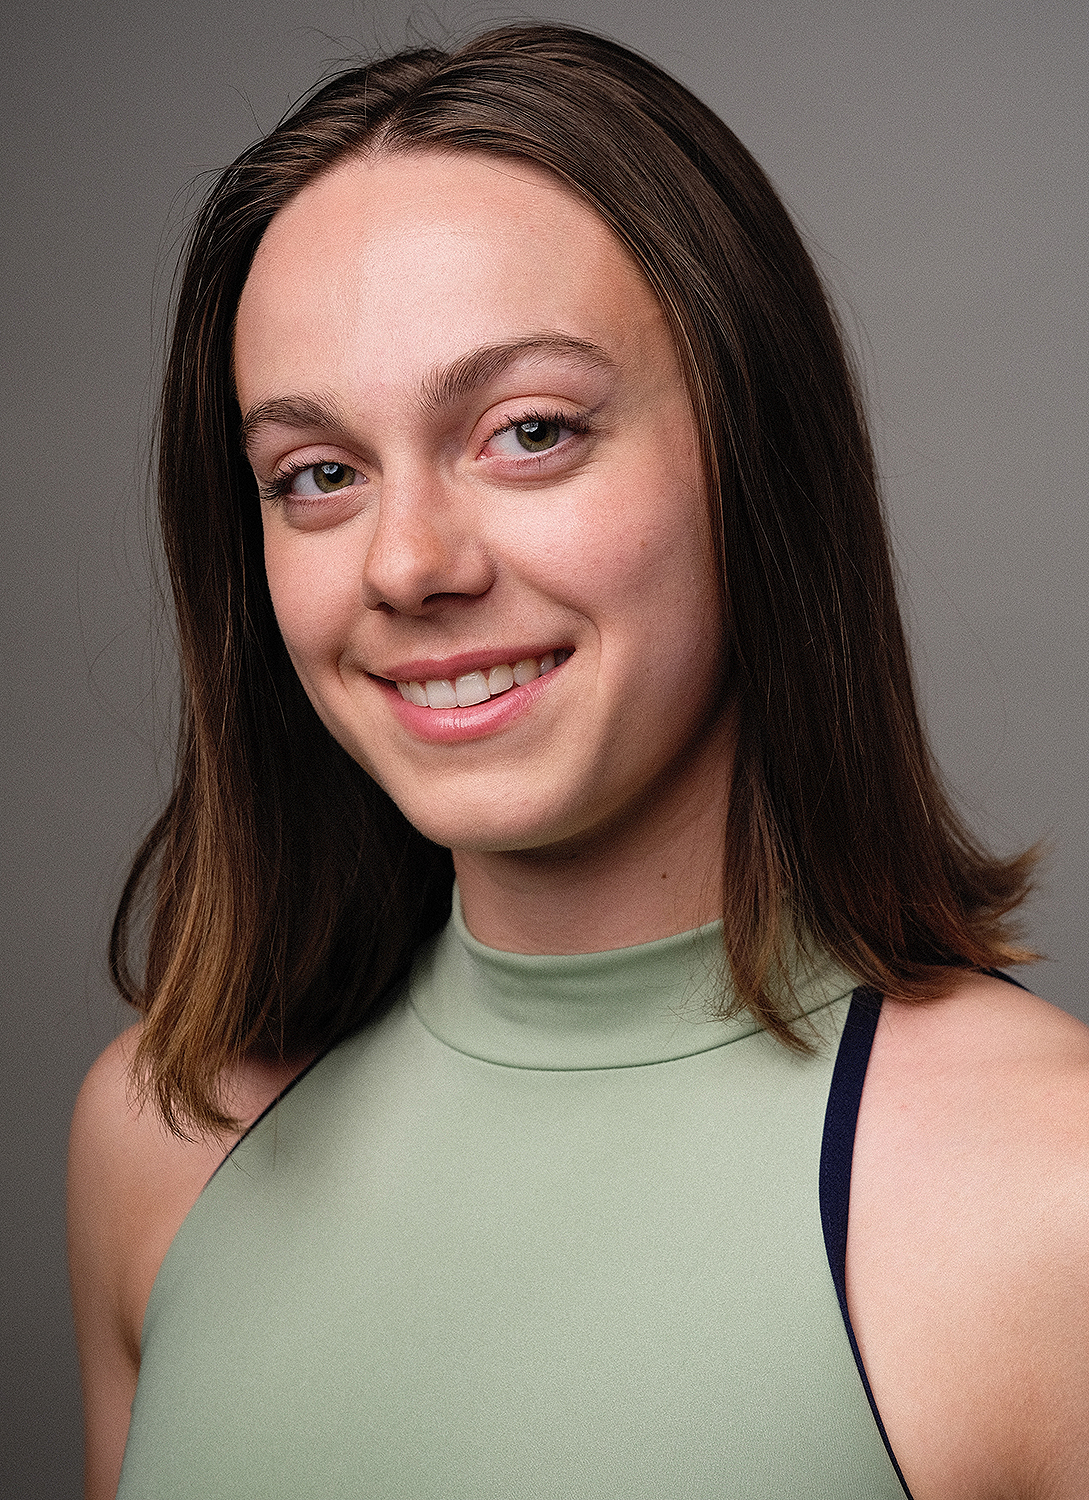 West Side Story headshots